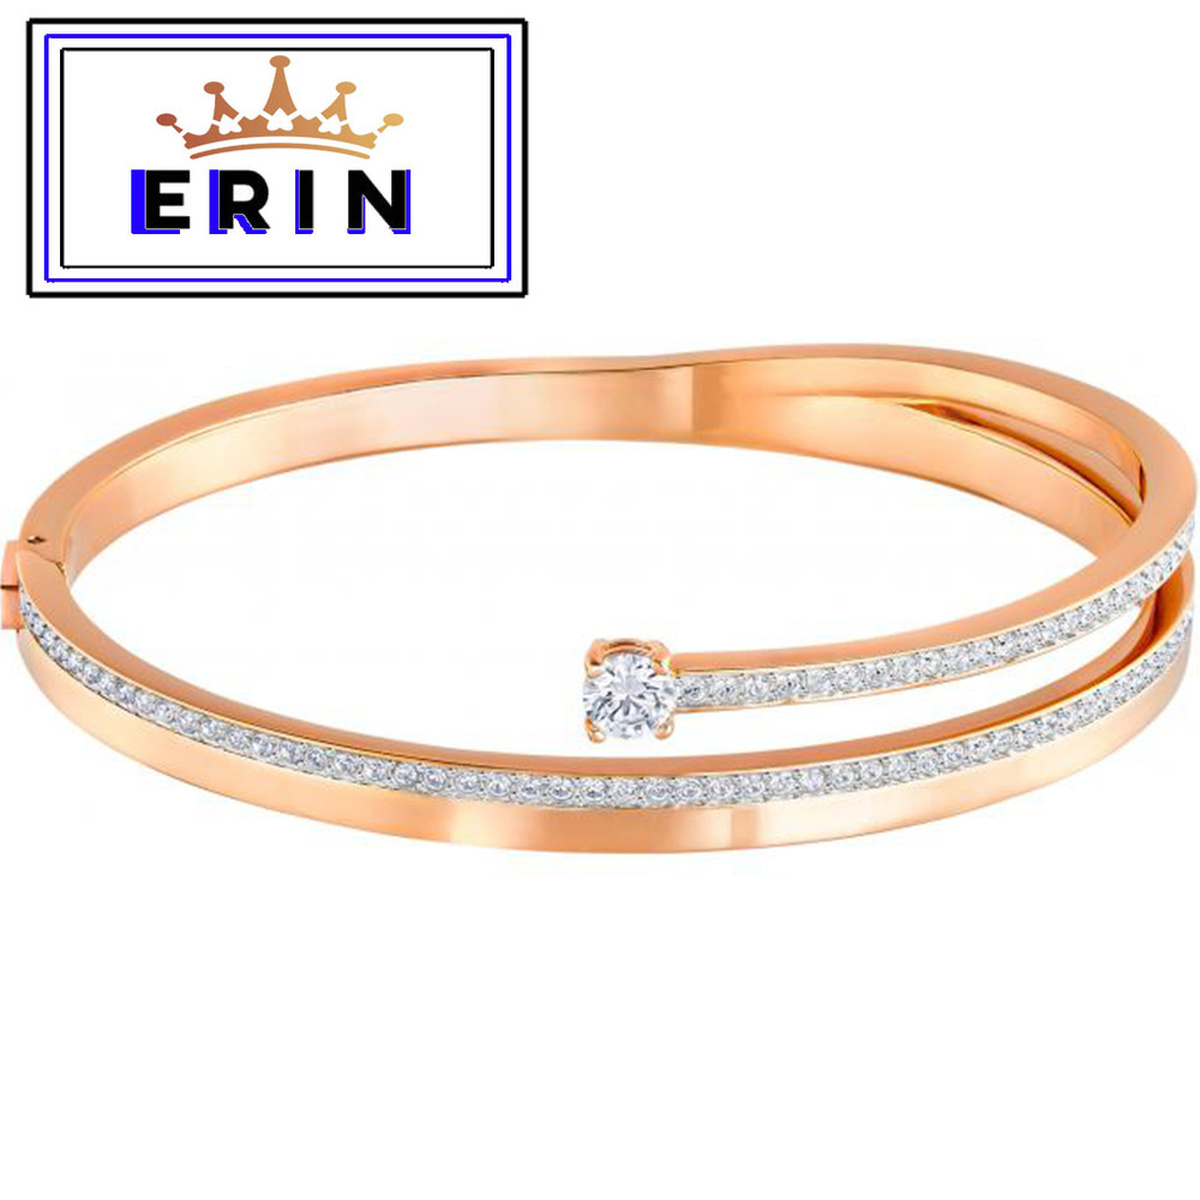 ERIN  SWA high quality, new simple and elegant women's Bracelet Gift